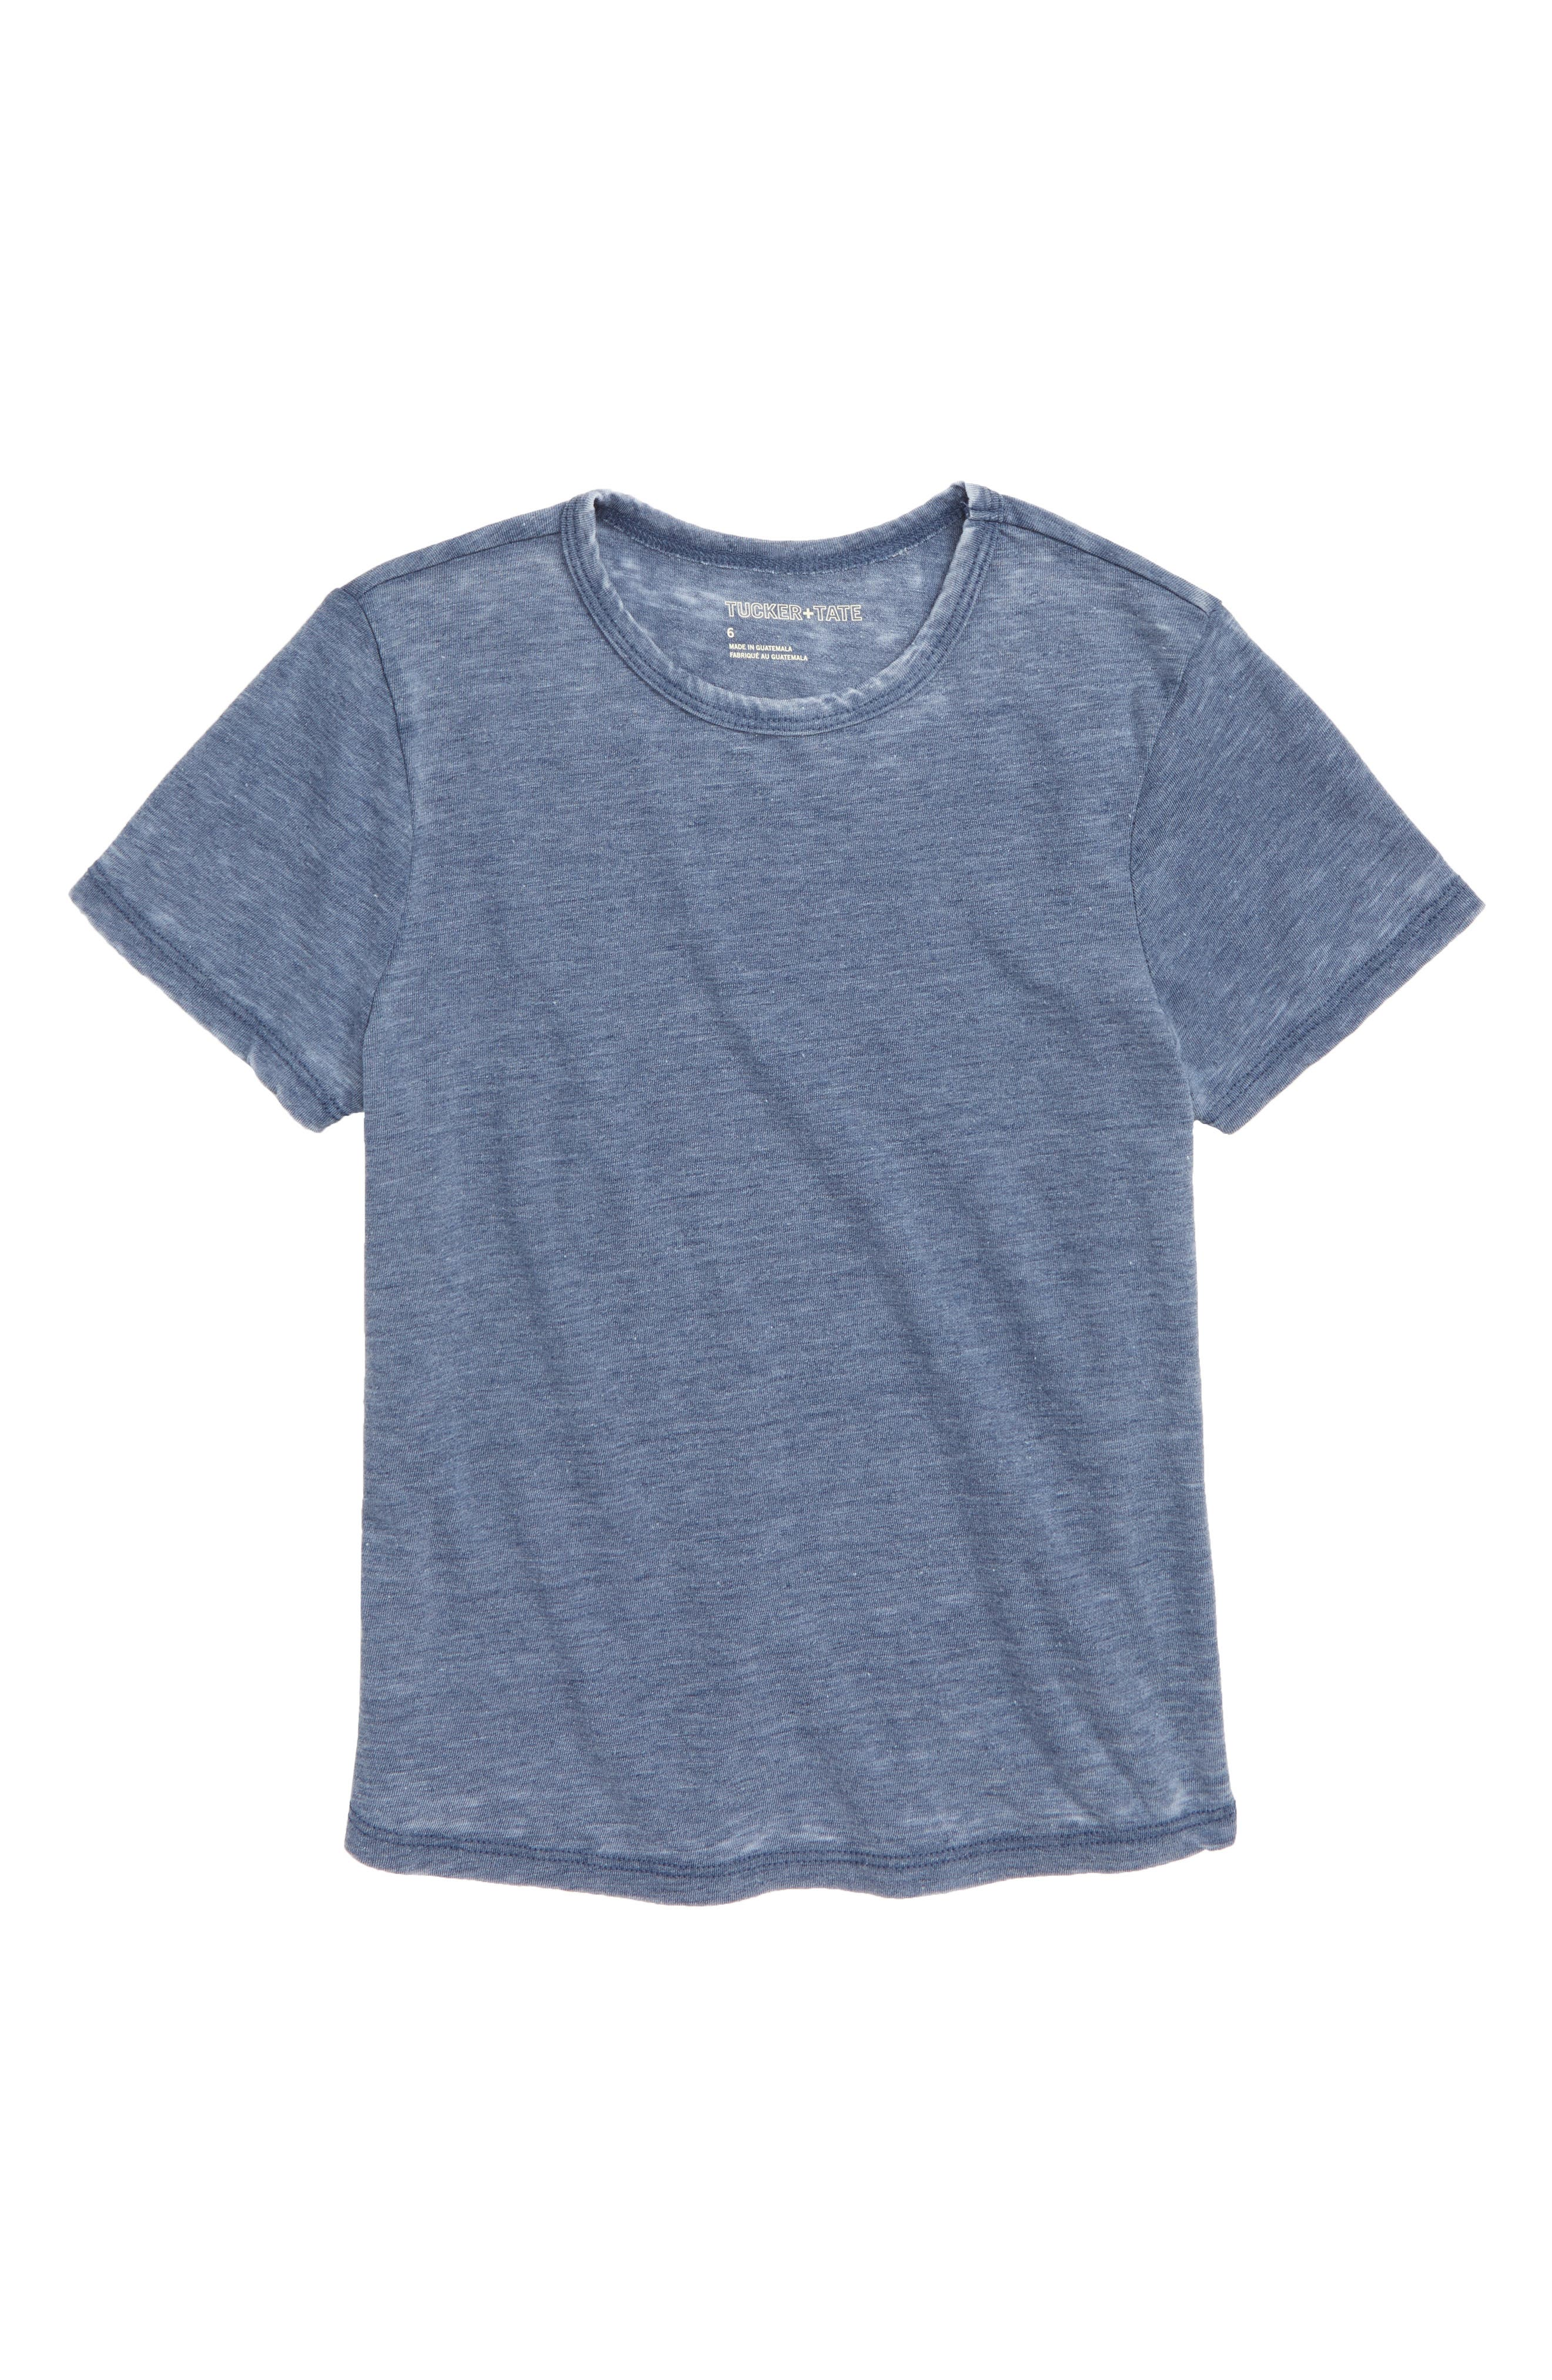 All Day Every Day T-Shirt,                             Main thumbnail 1, color,                             BLUE OASIS